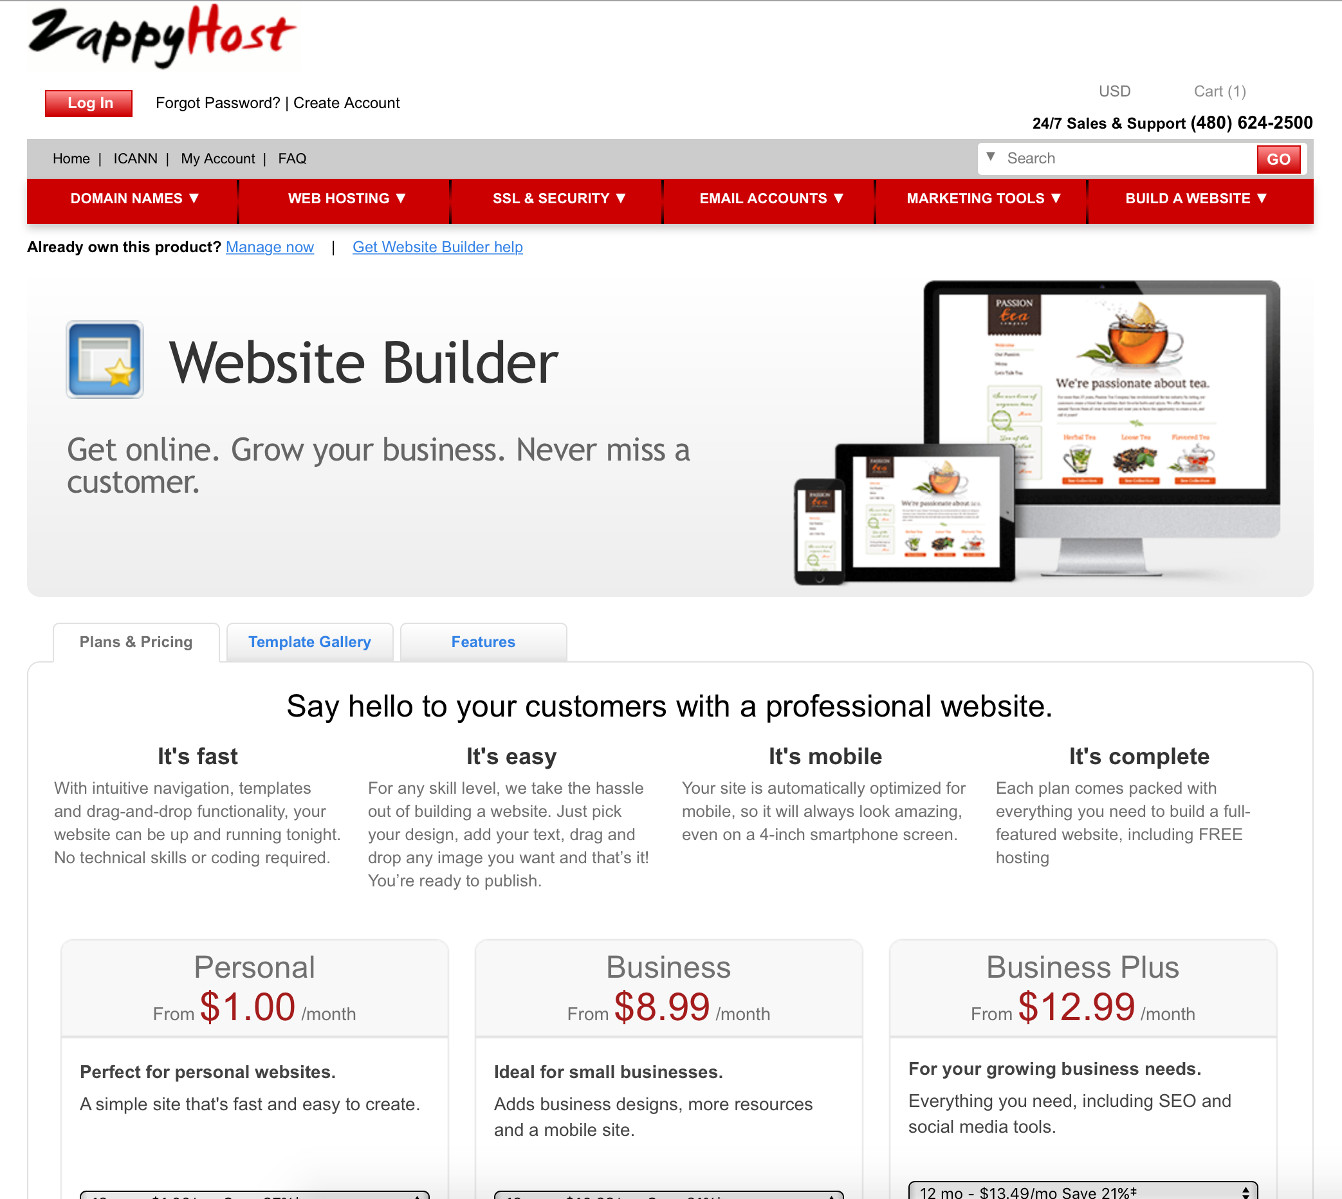 Screenshot of the ZappyHost Website Builder page